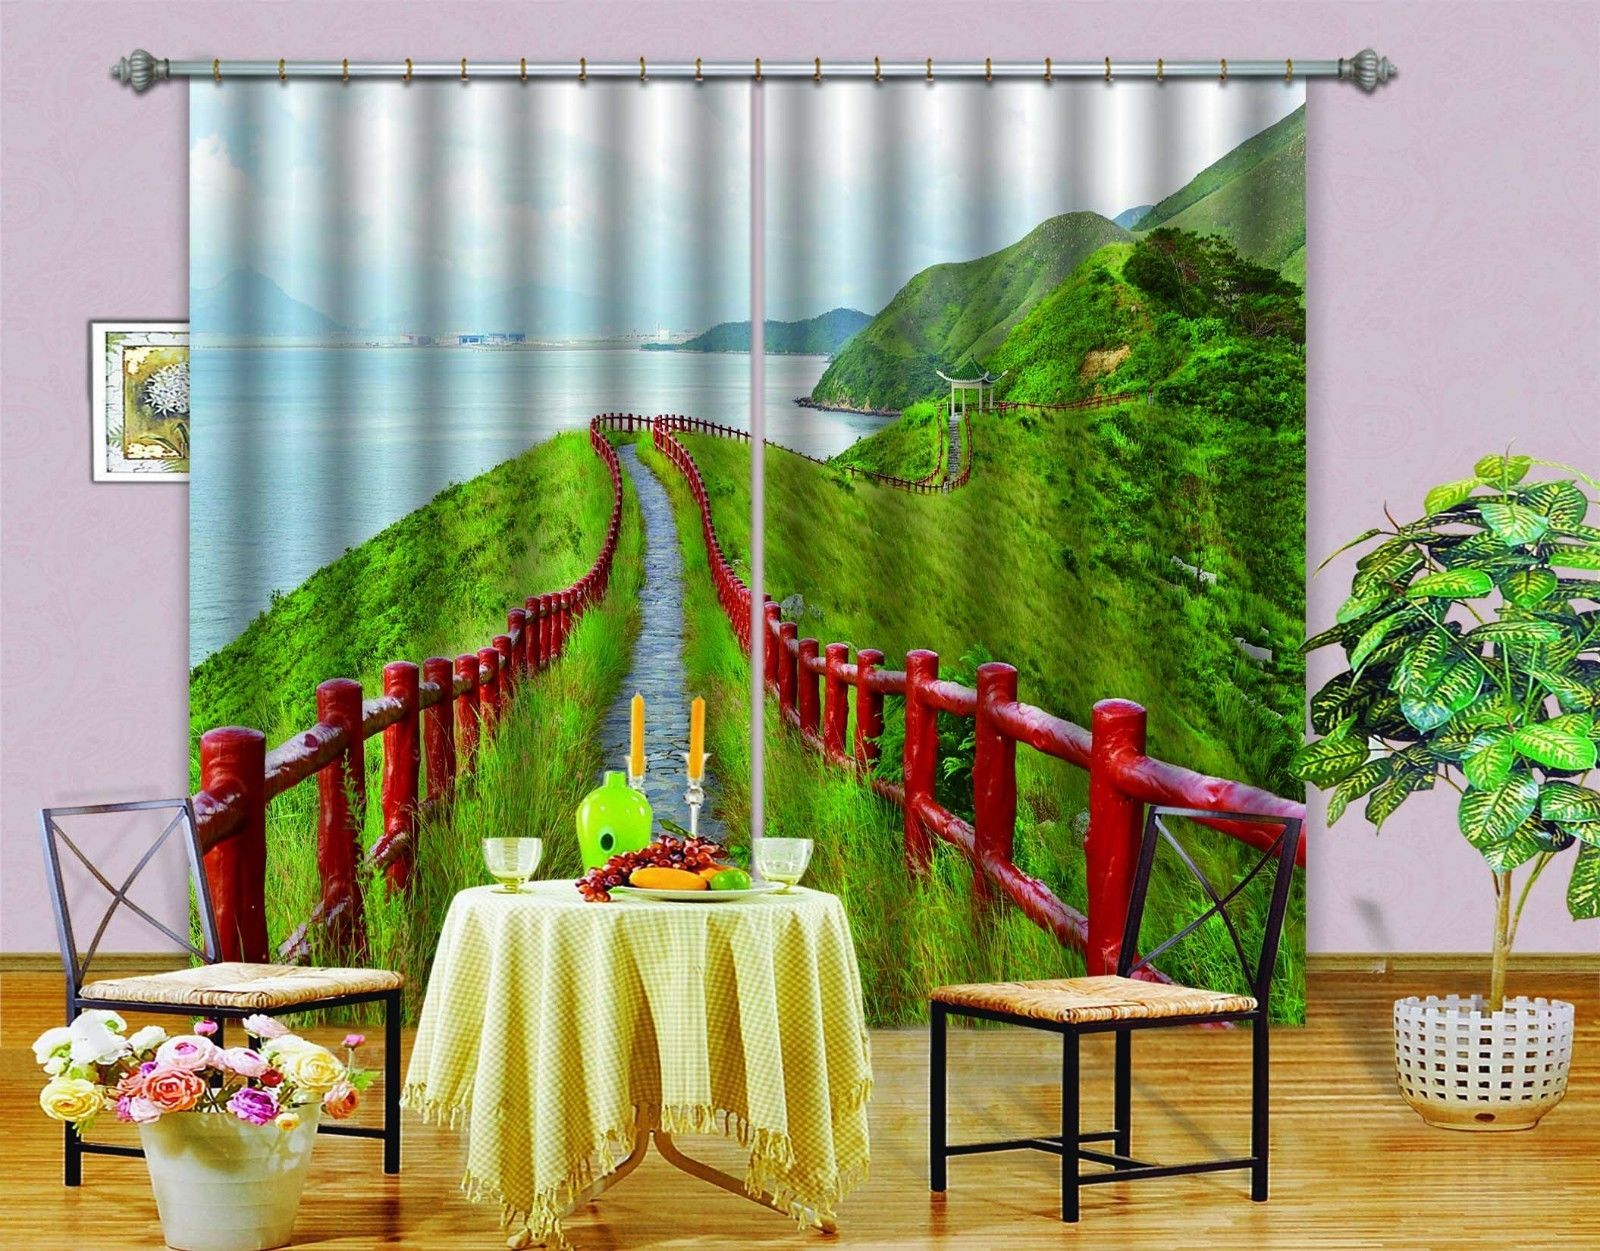 Primary image for 3D Hillside 0503 Blockout Photo Curtain Print Curtains Drapes Fabric Window UK